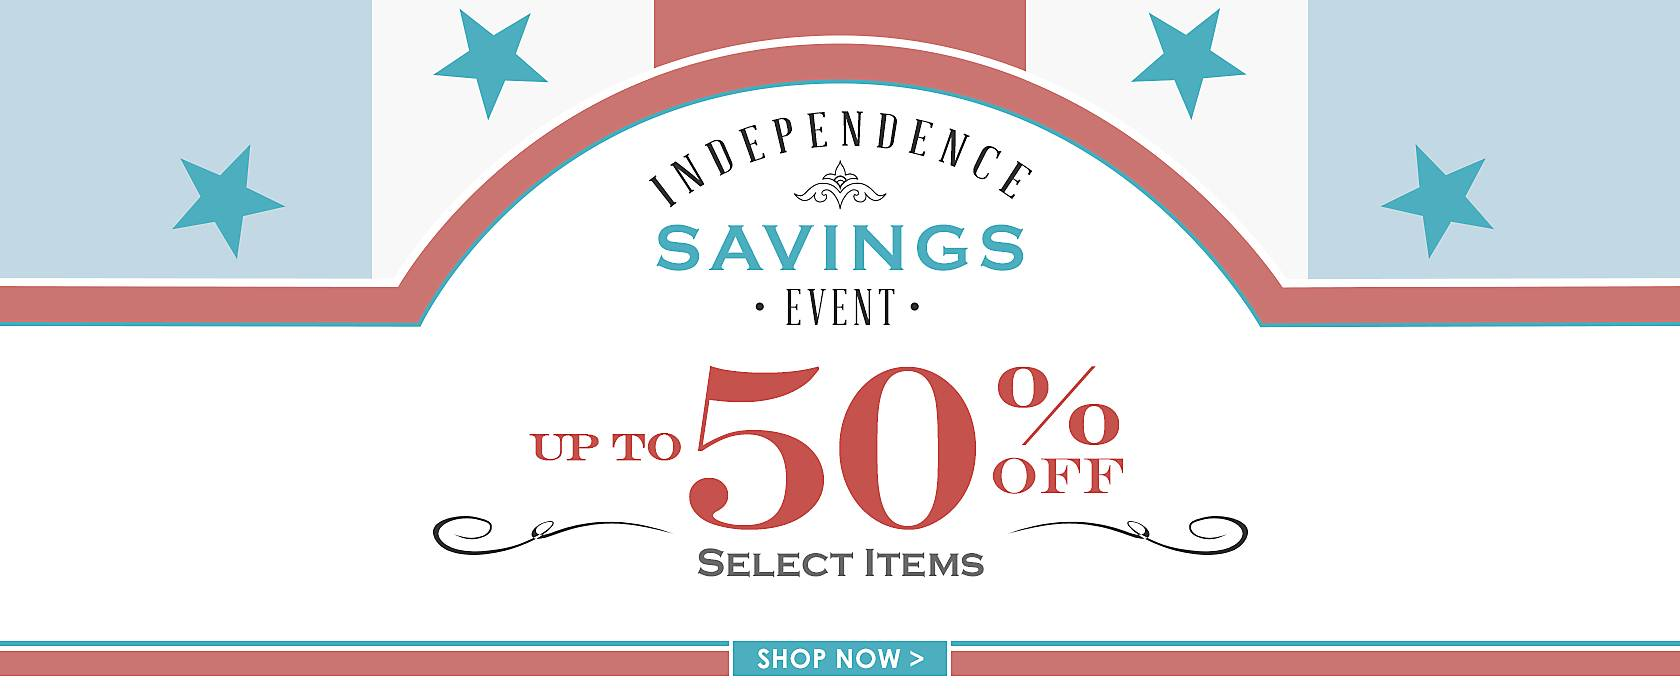 Up to 50% Off Select Items - Shop Now